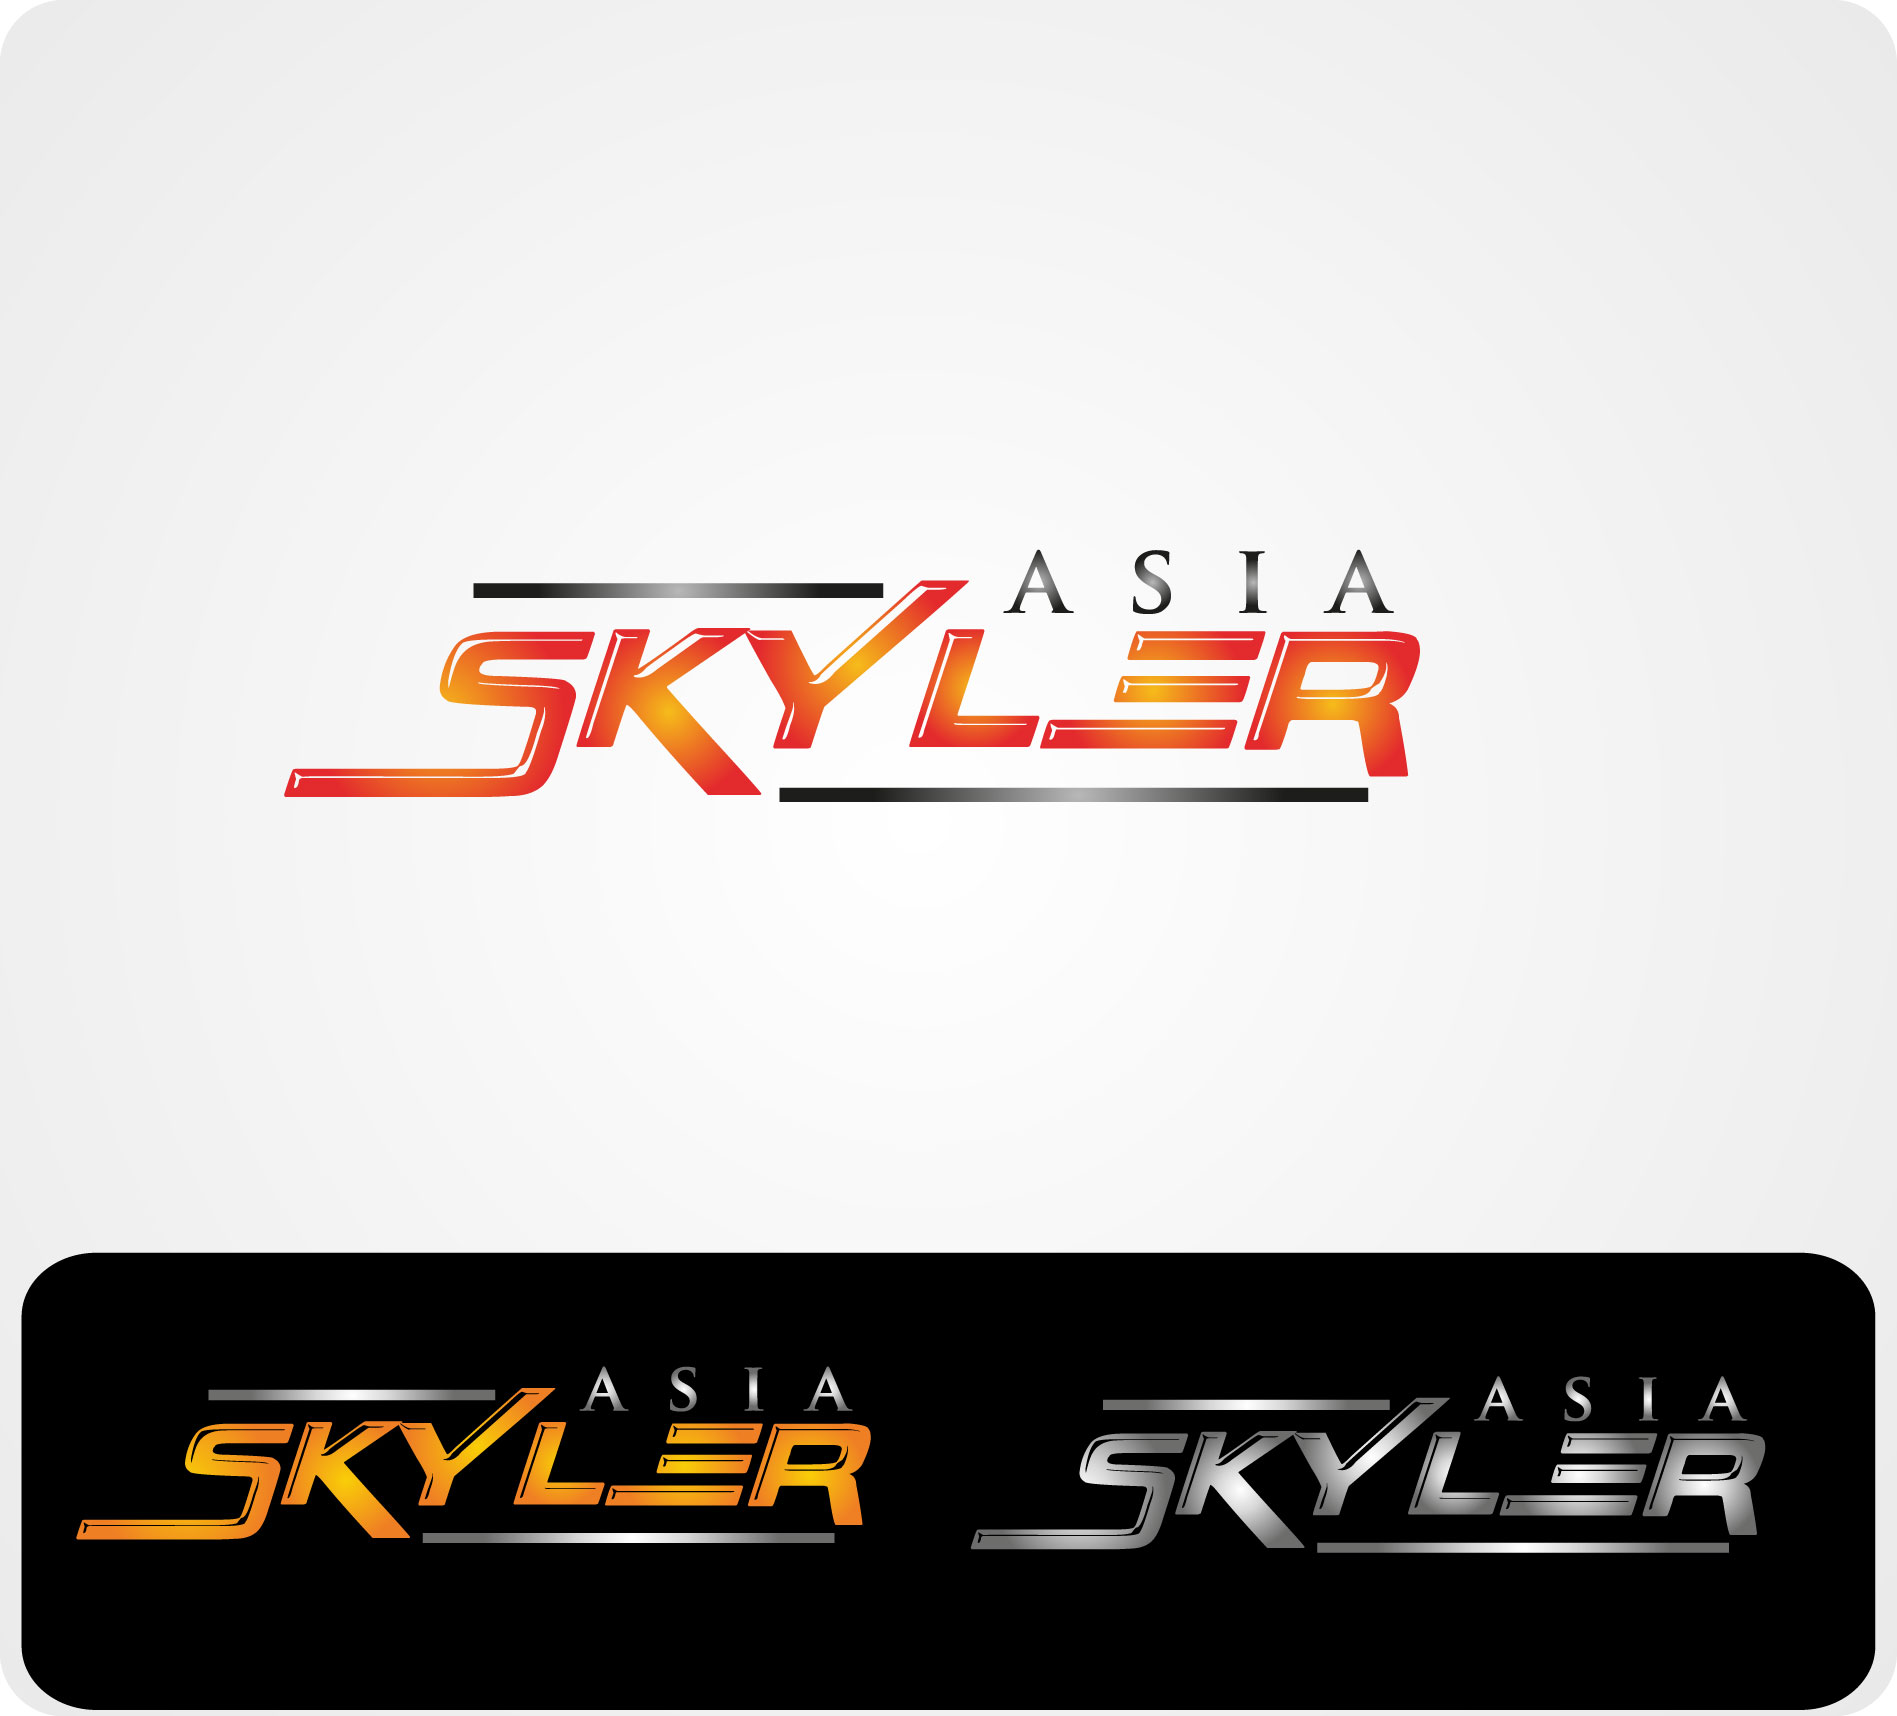 Logo Design by Darina Dimitrova - Entry No. 72 in the Logo Design Contest Artistic Logo Design for Skyler.Asia.